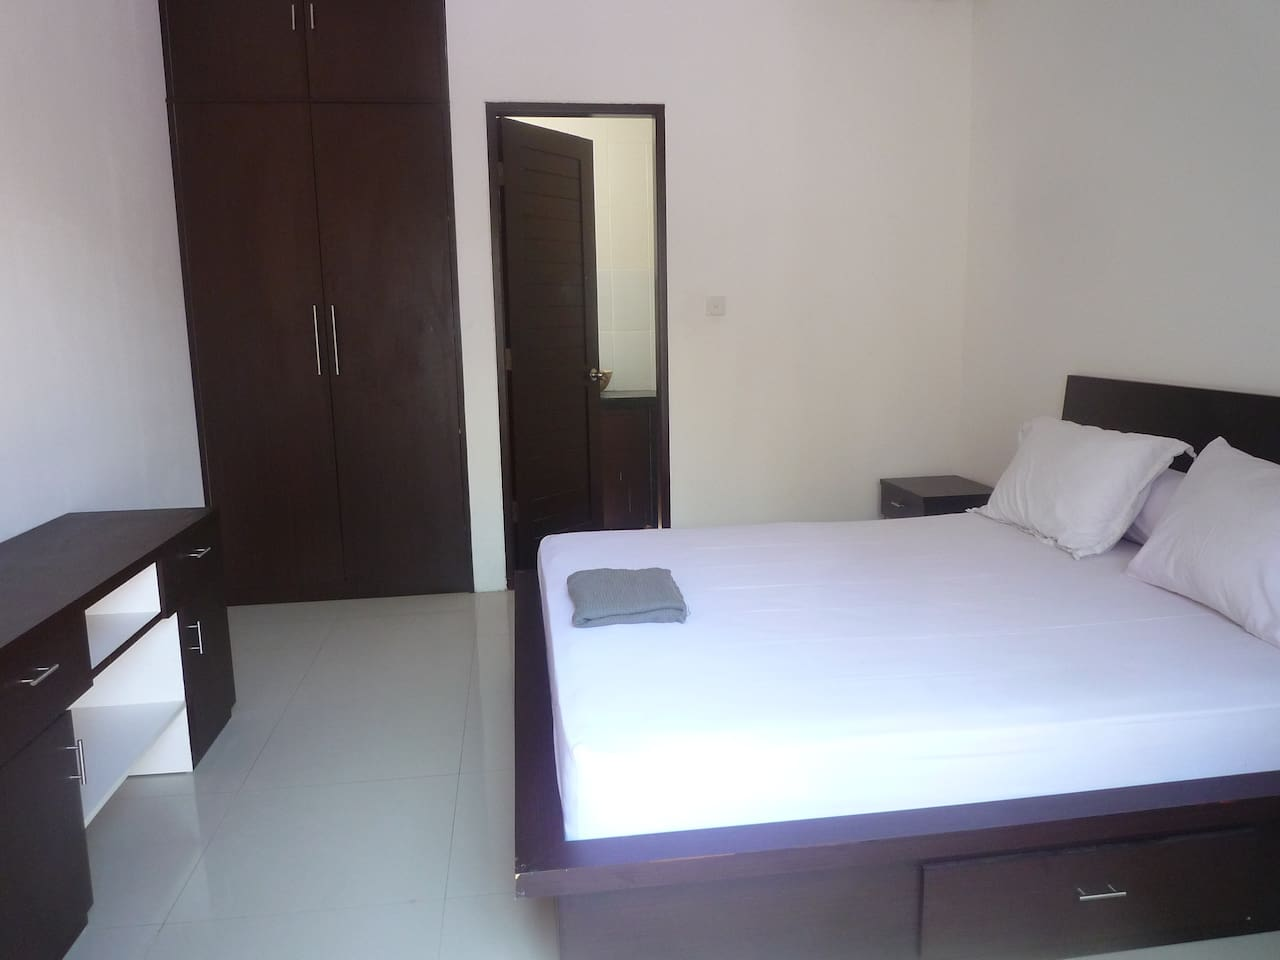 This is the room available to rent with a connecting wet room / toilet.